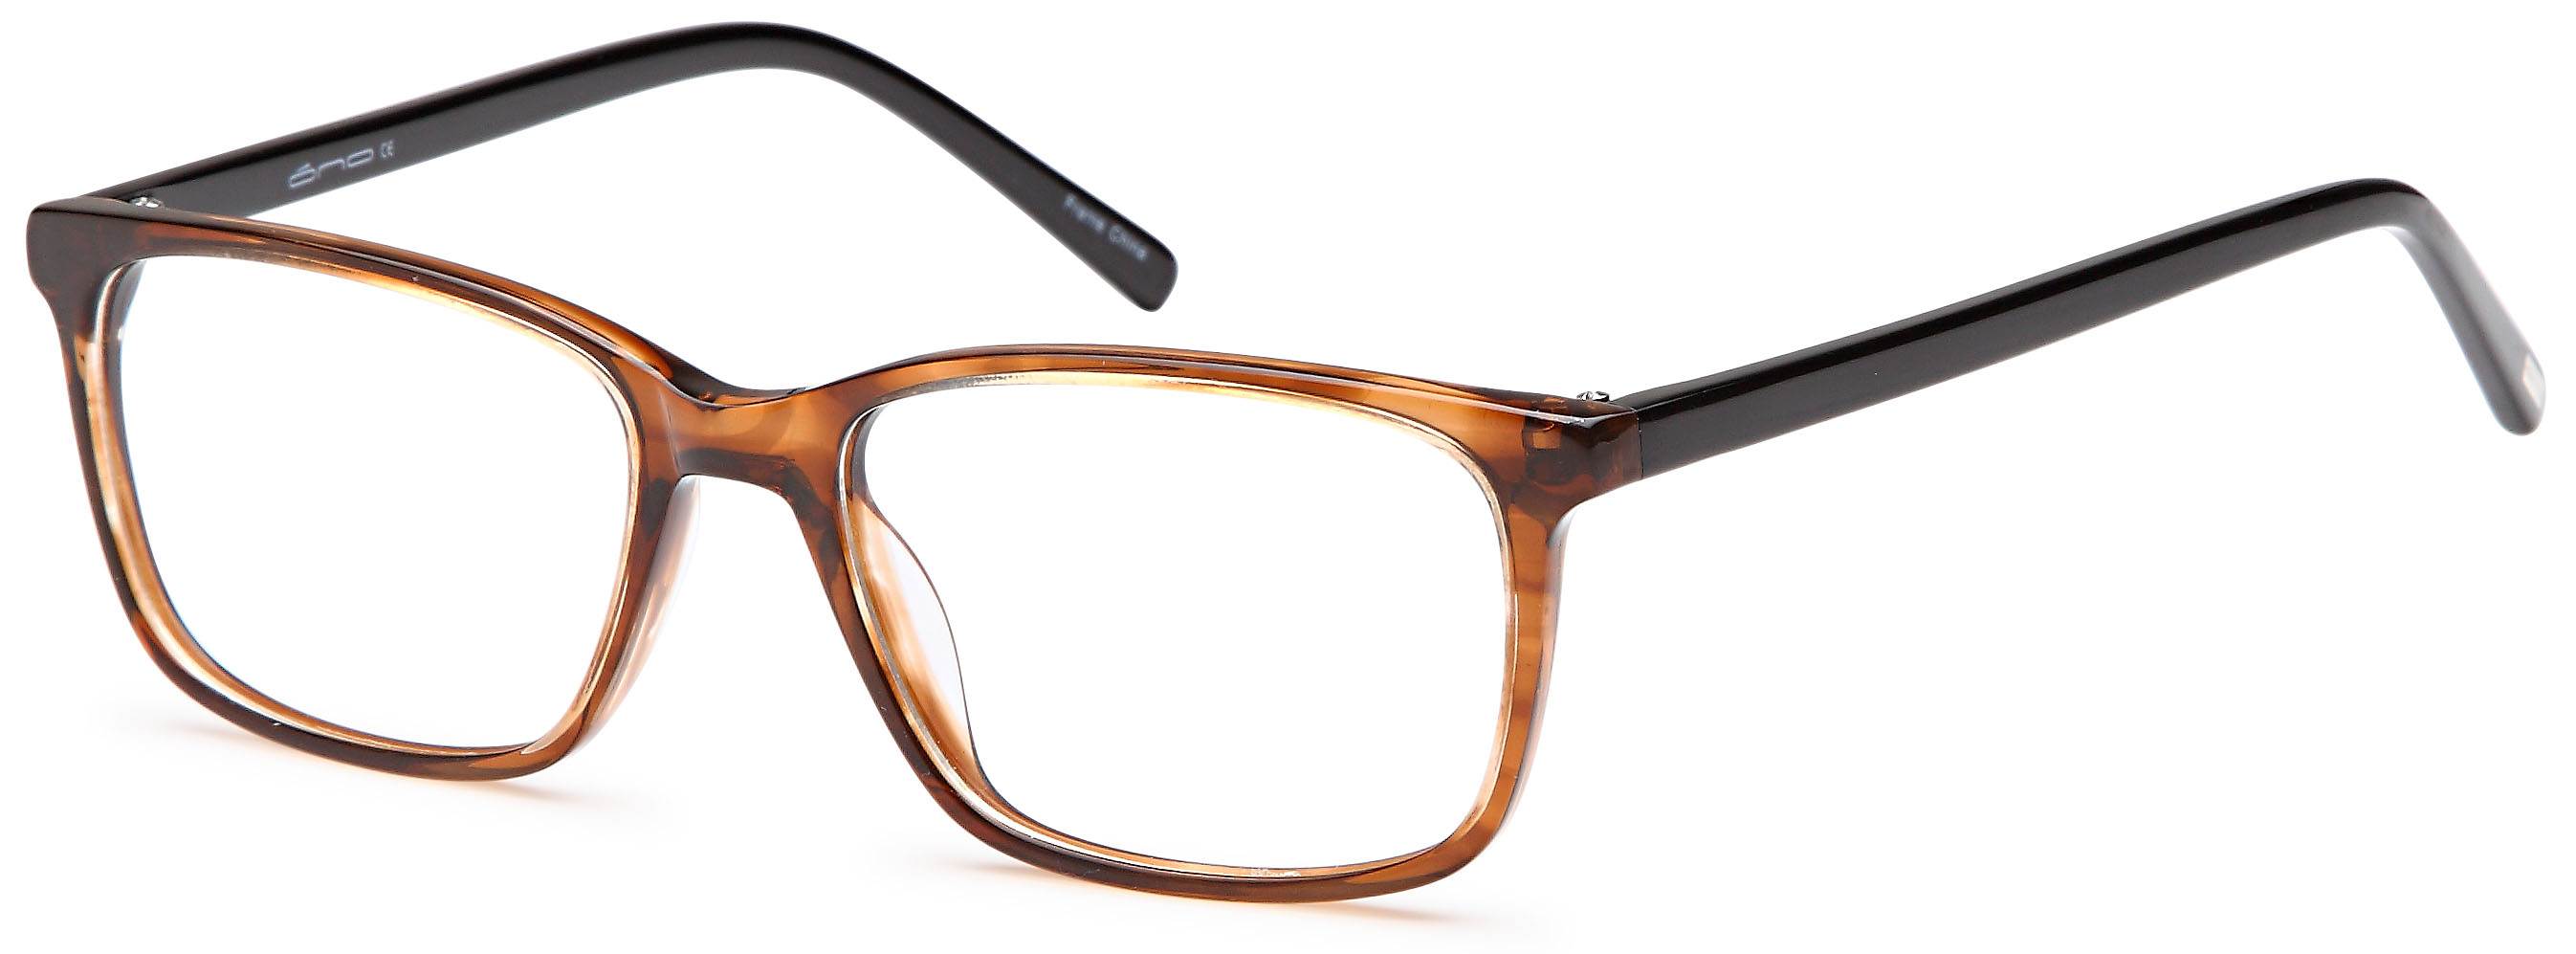 7b9878d32a Where To Buy Eyeglass Frames Only - Bitterroot Public Library